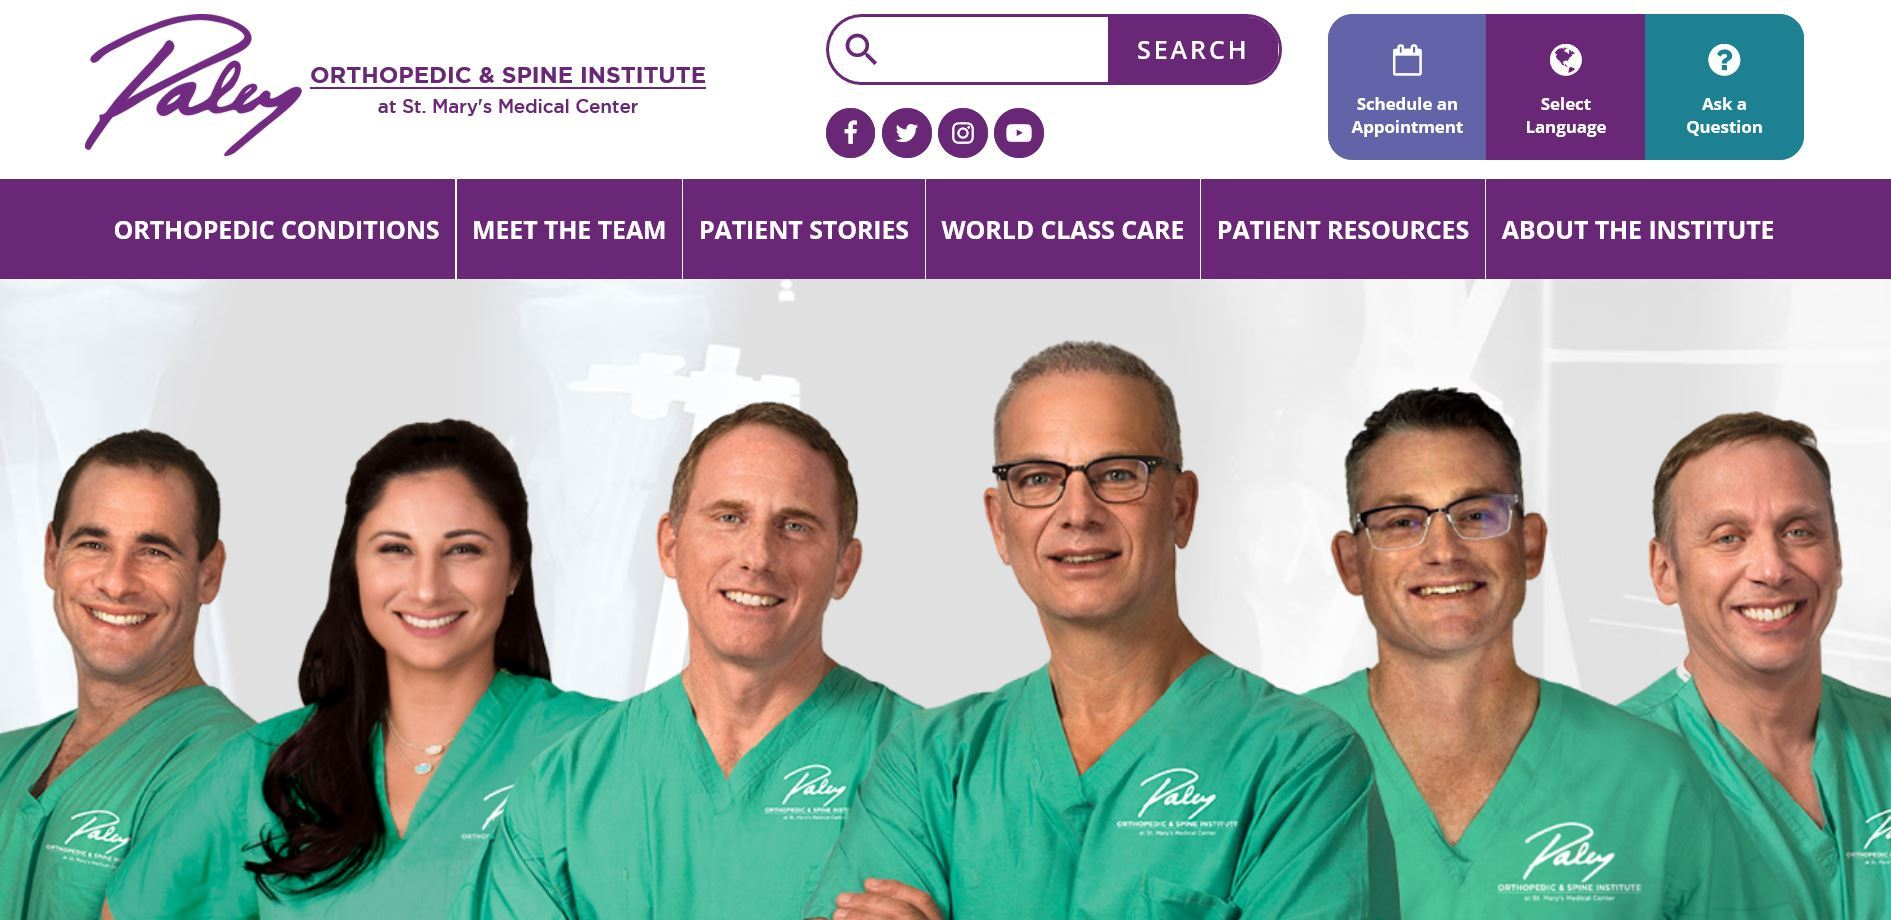 New Paley Orthopedic & Spine Institute Website